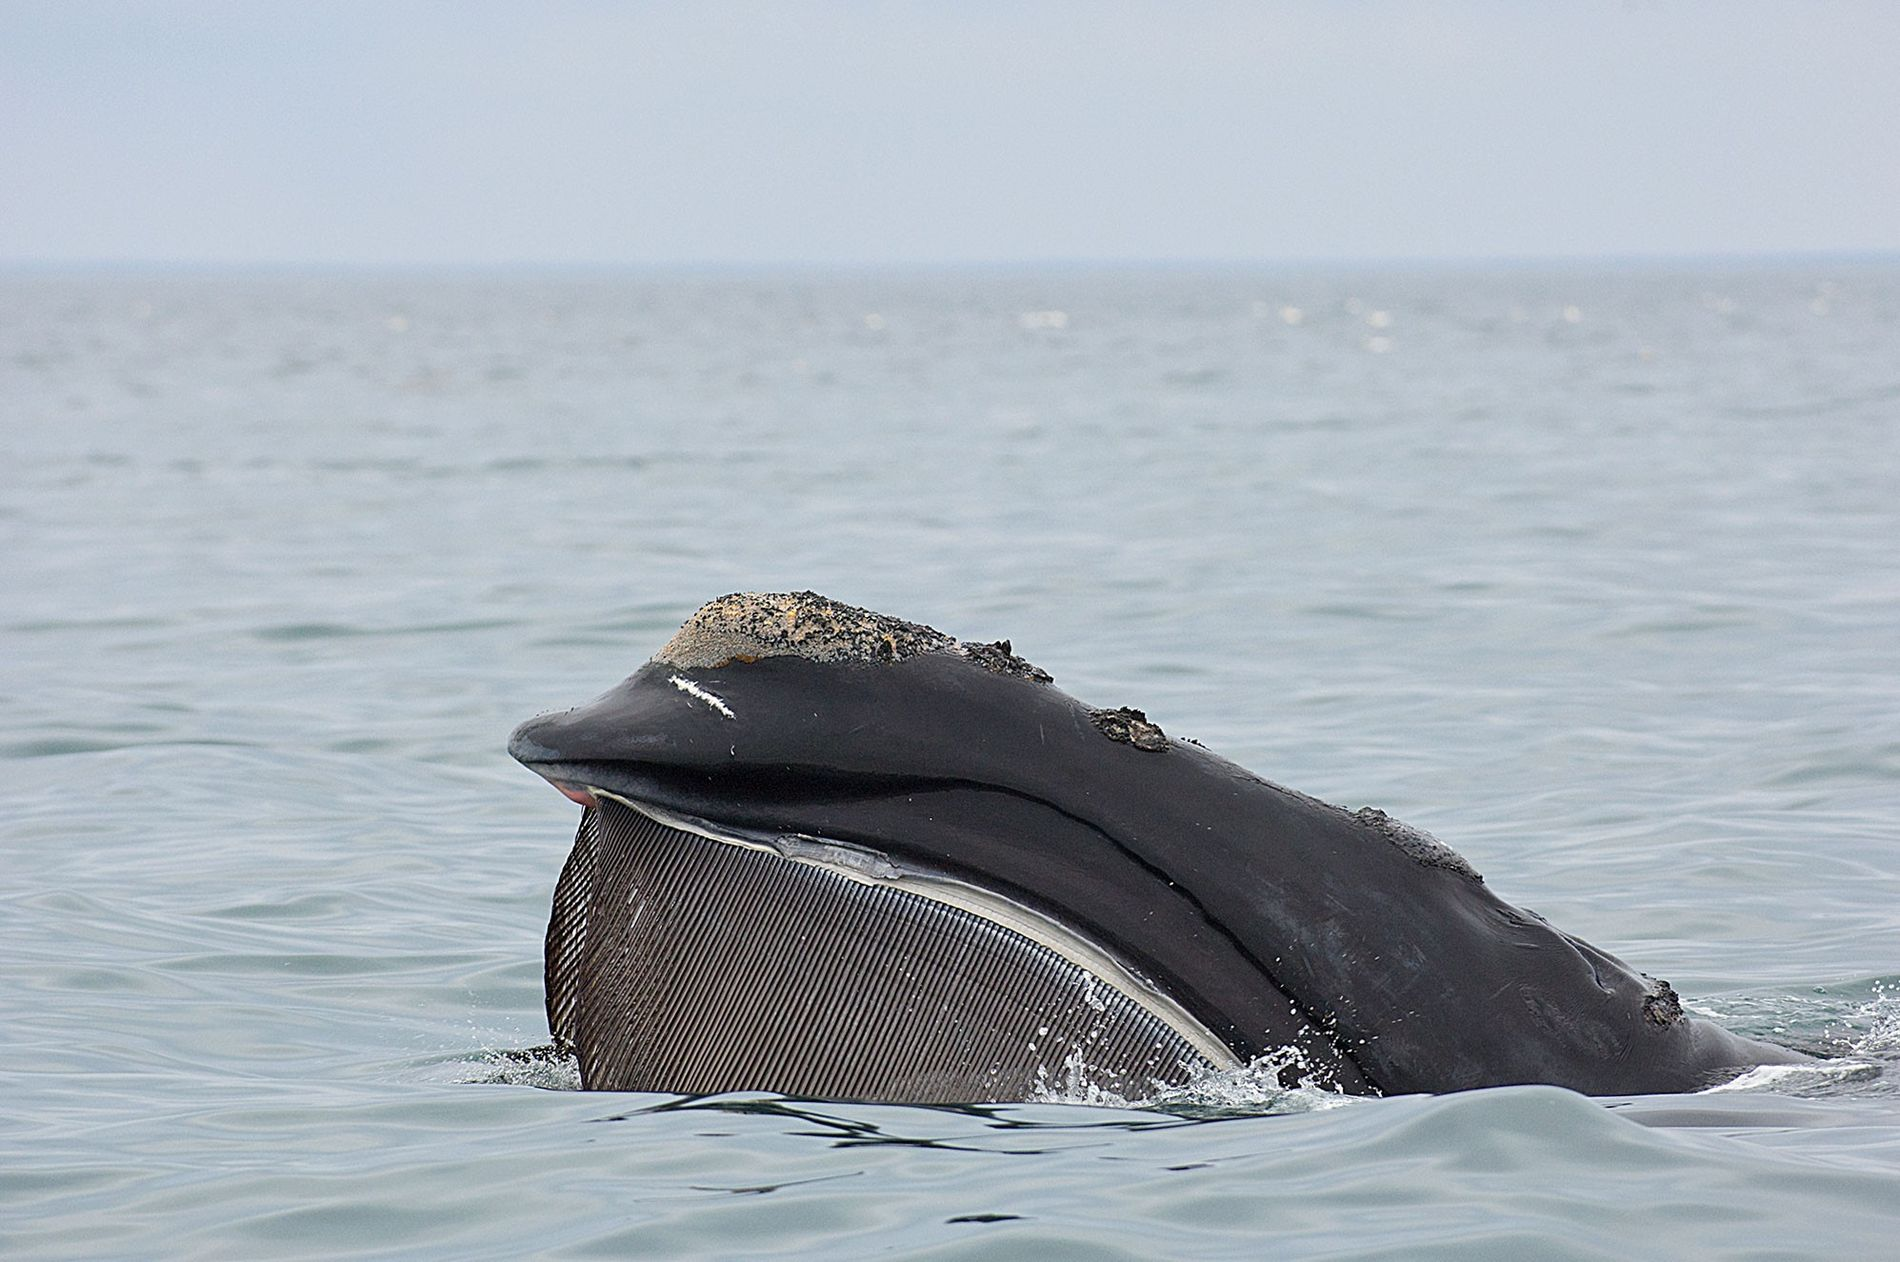 A North Atlantic right whale trawls with open mouth along the surface. It's food supply could ...